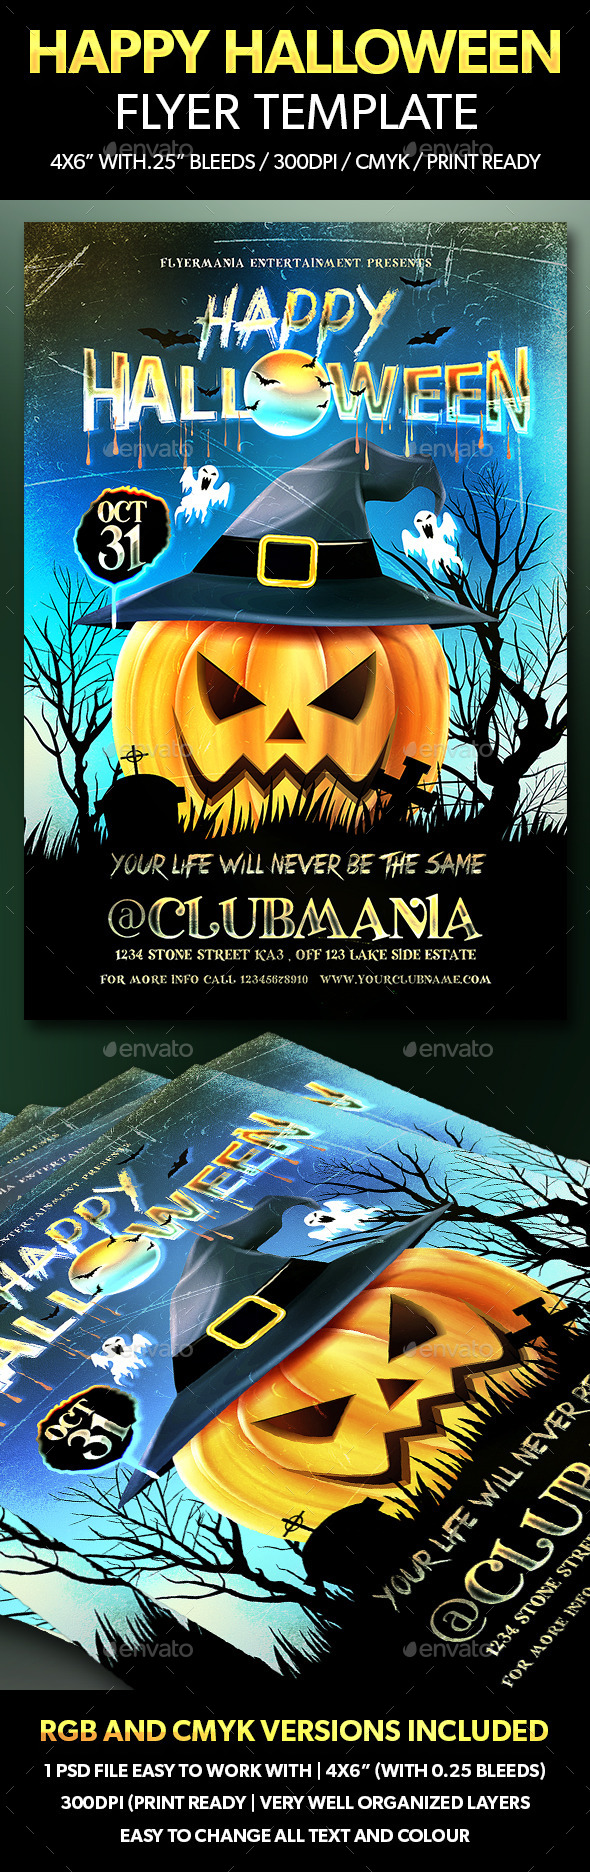 Happy Halloween Flyer Template - Flyers Print Templates